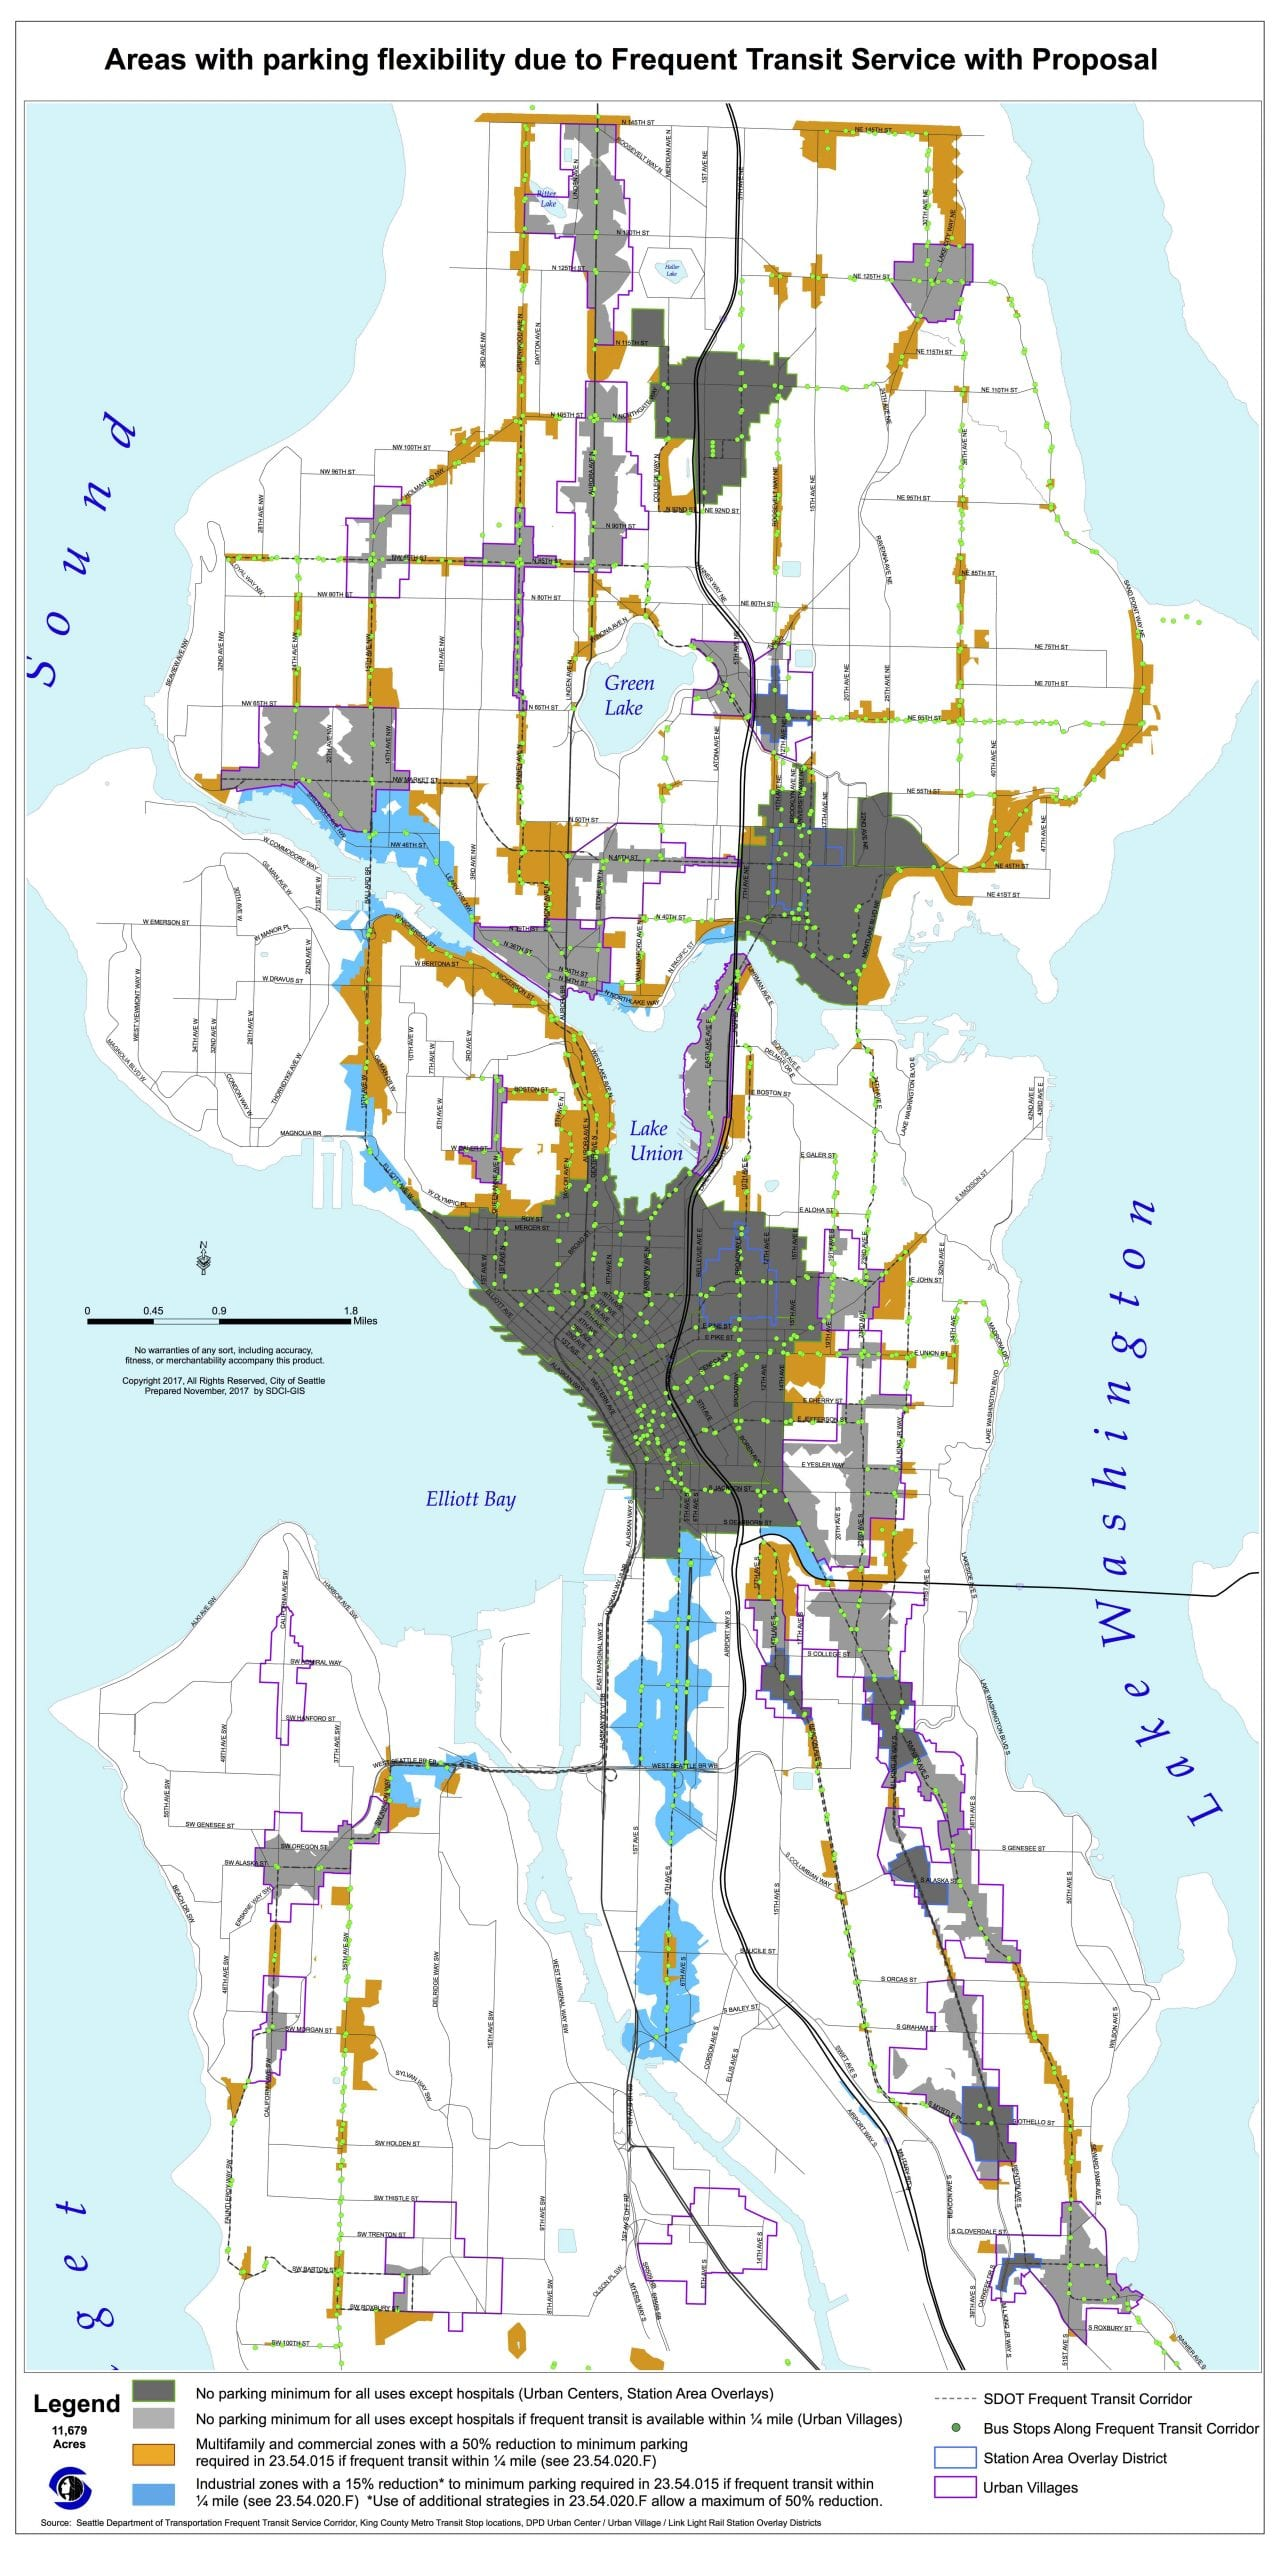 Seattles Neighborhood Parking Reform reduced requirements